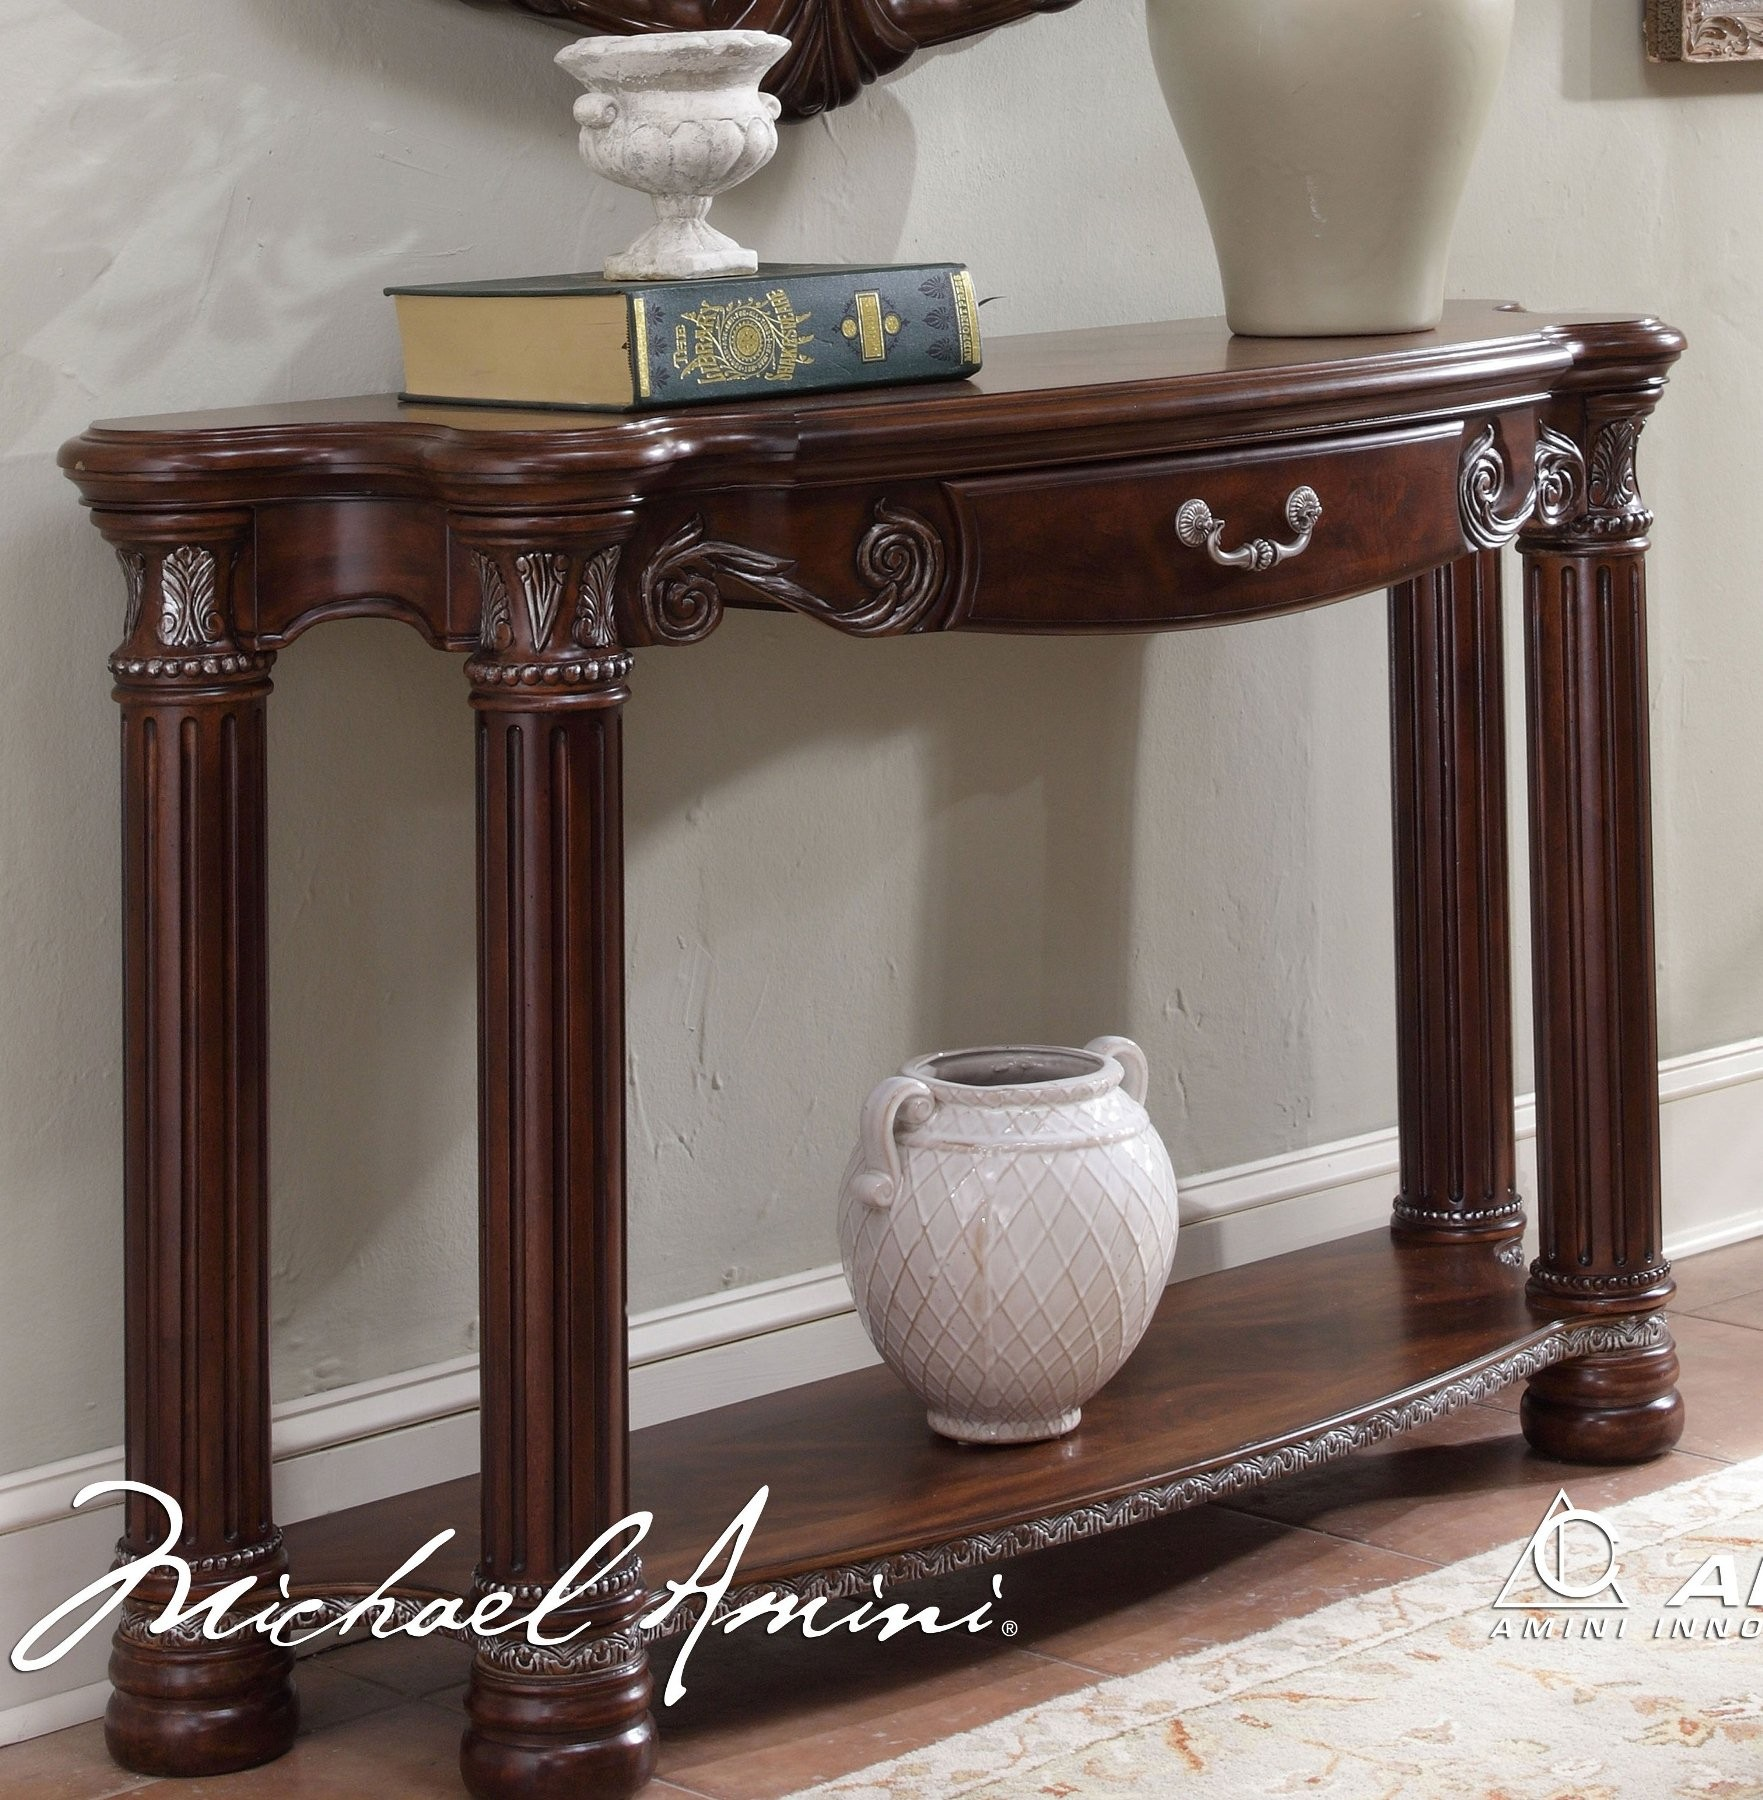 Monte carlo ii cafe noir console table by aico furniture - Table console noire ...